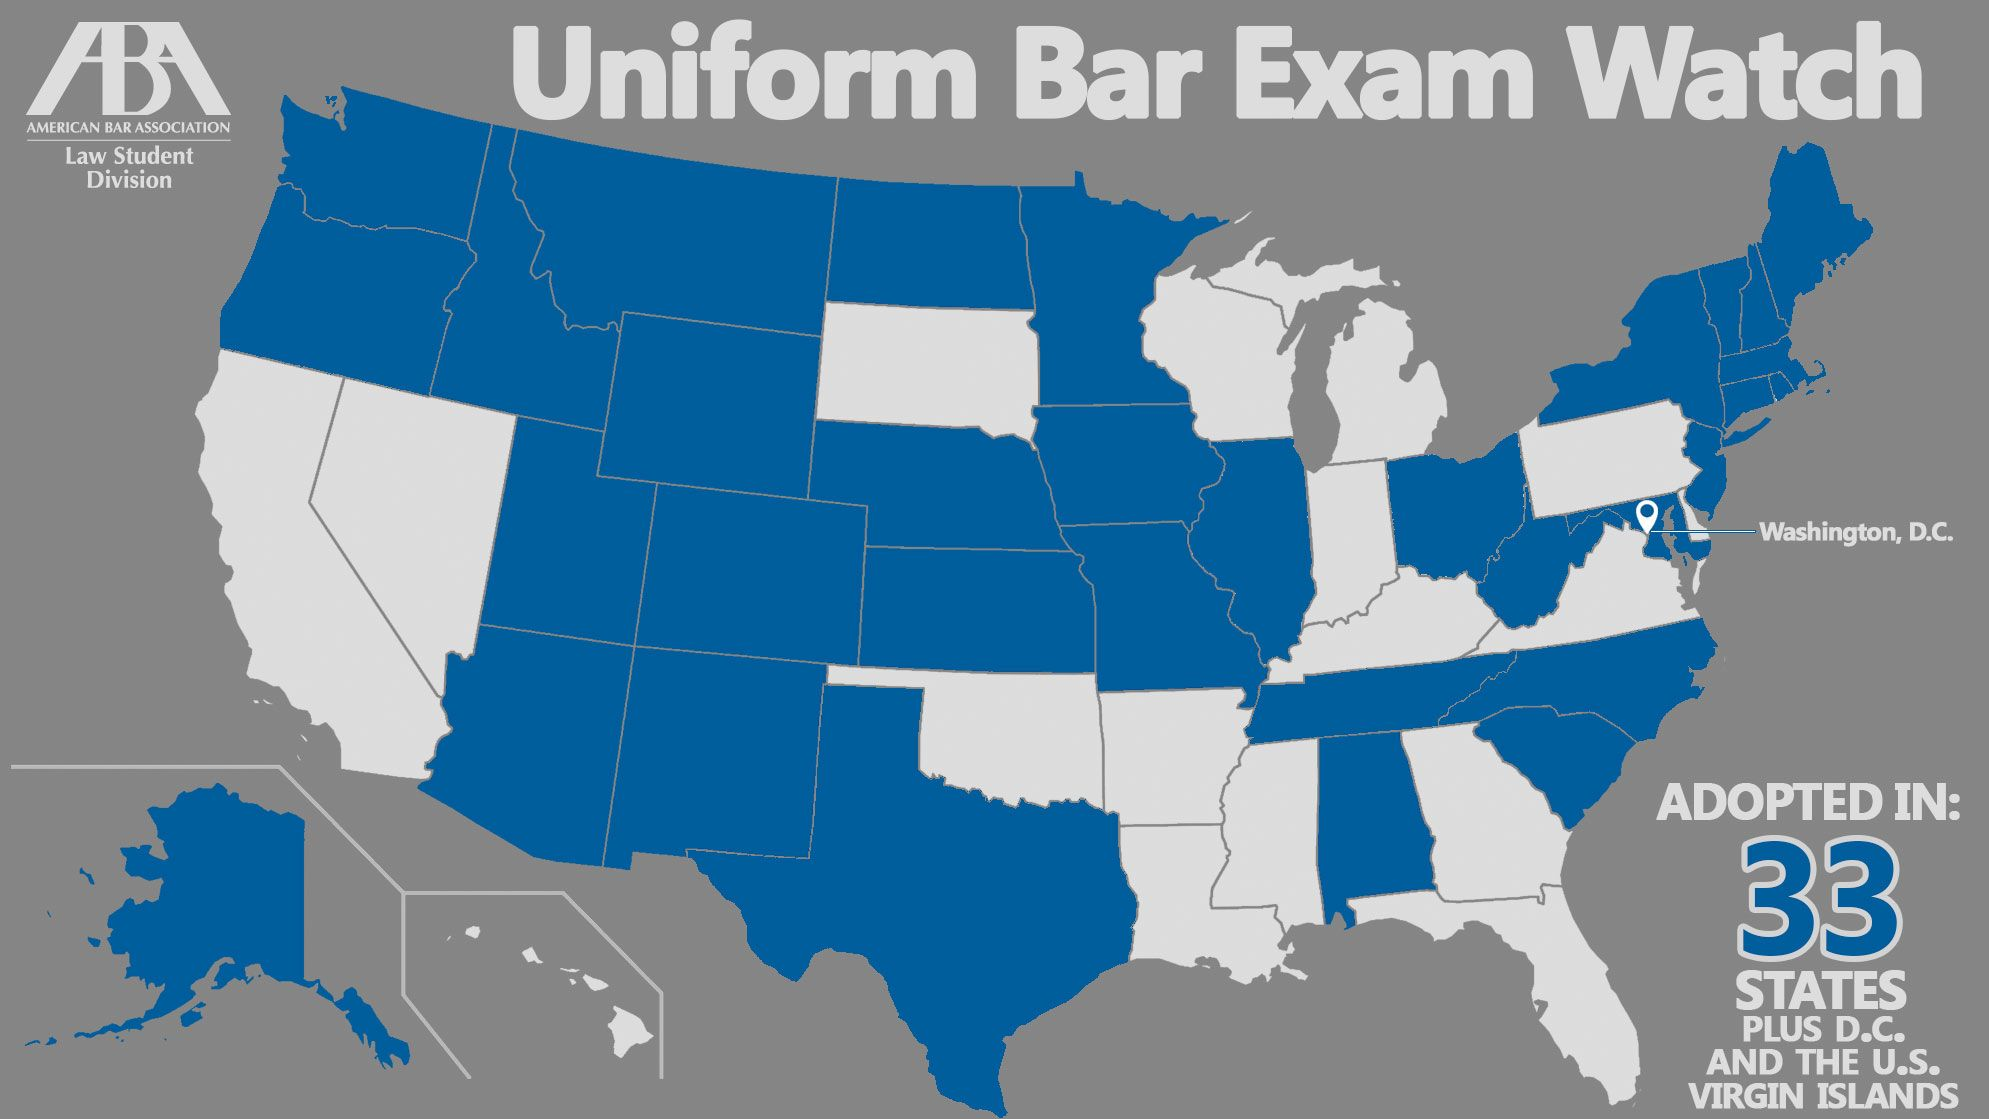 It's official—Texas adopts the Uniform Bar Exam Law